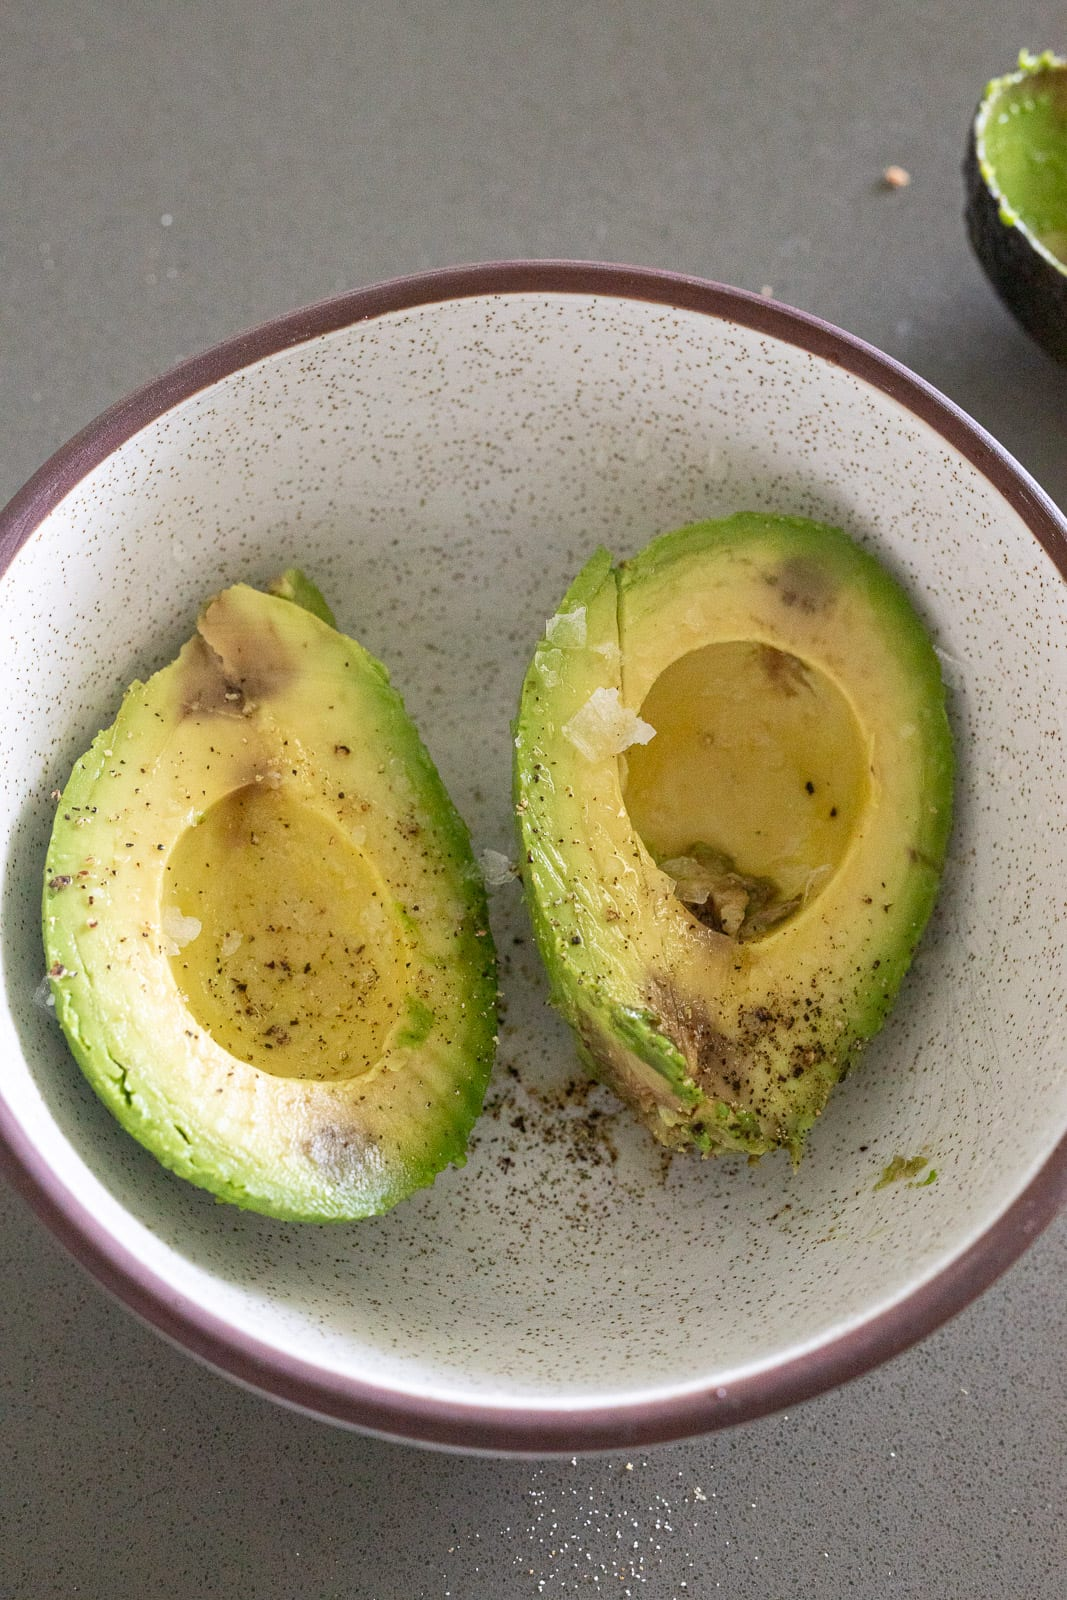 avocados in a ceramic bowl for topping appetizer.